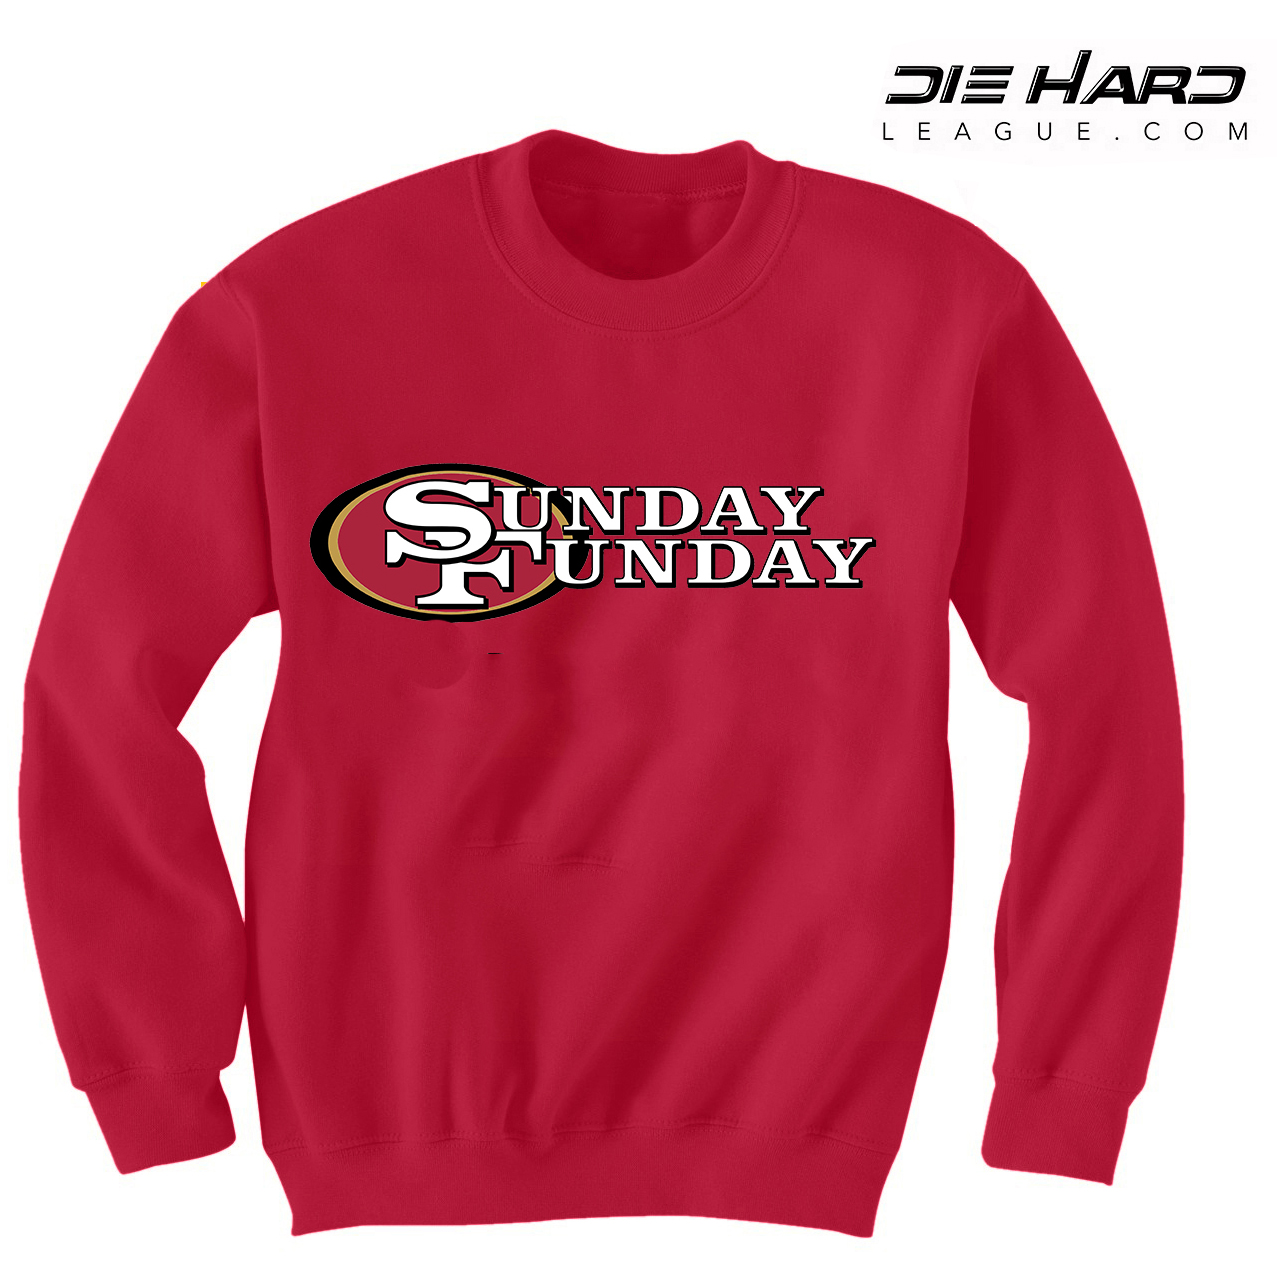 be1578016 Home San Francisco 49ers Shop 49ers Sweaters 49er Sweatshirts – Sunday  Funday Red Sweatshirt. BACK ...